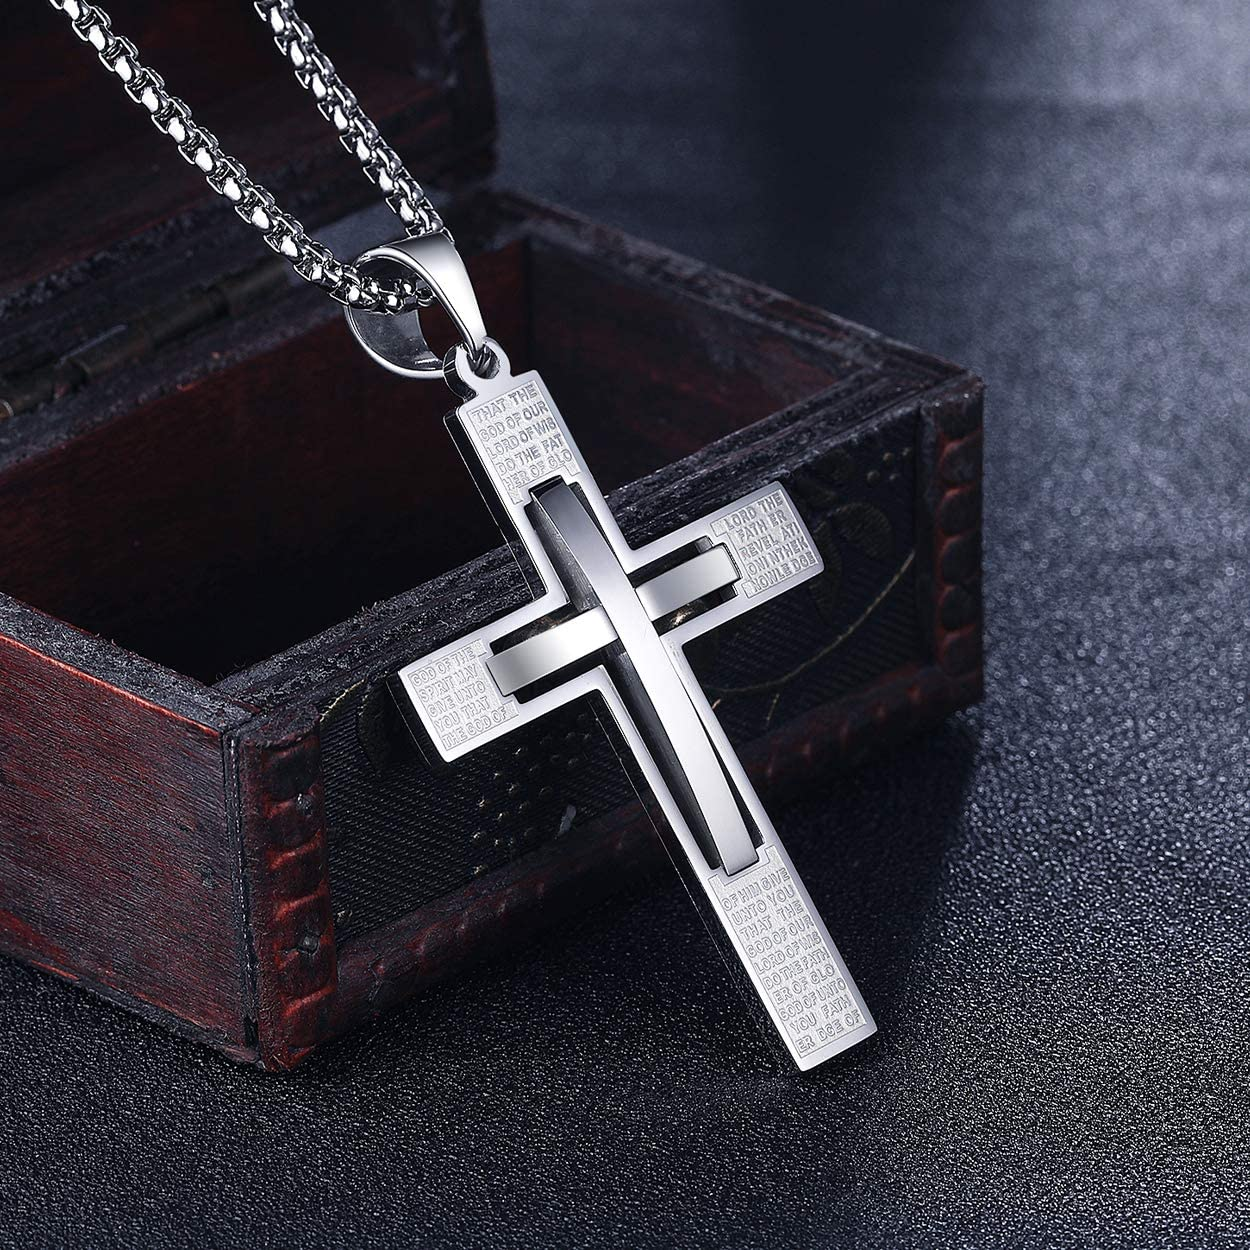 Rehoboth Stainless Steel Lords Prayer Cross Pendant Necklaces Bible Verse Proverbs 4:23 Pendant for Men or Women Chain 24 Inch Black Gold Silver